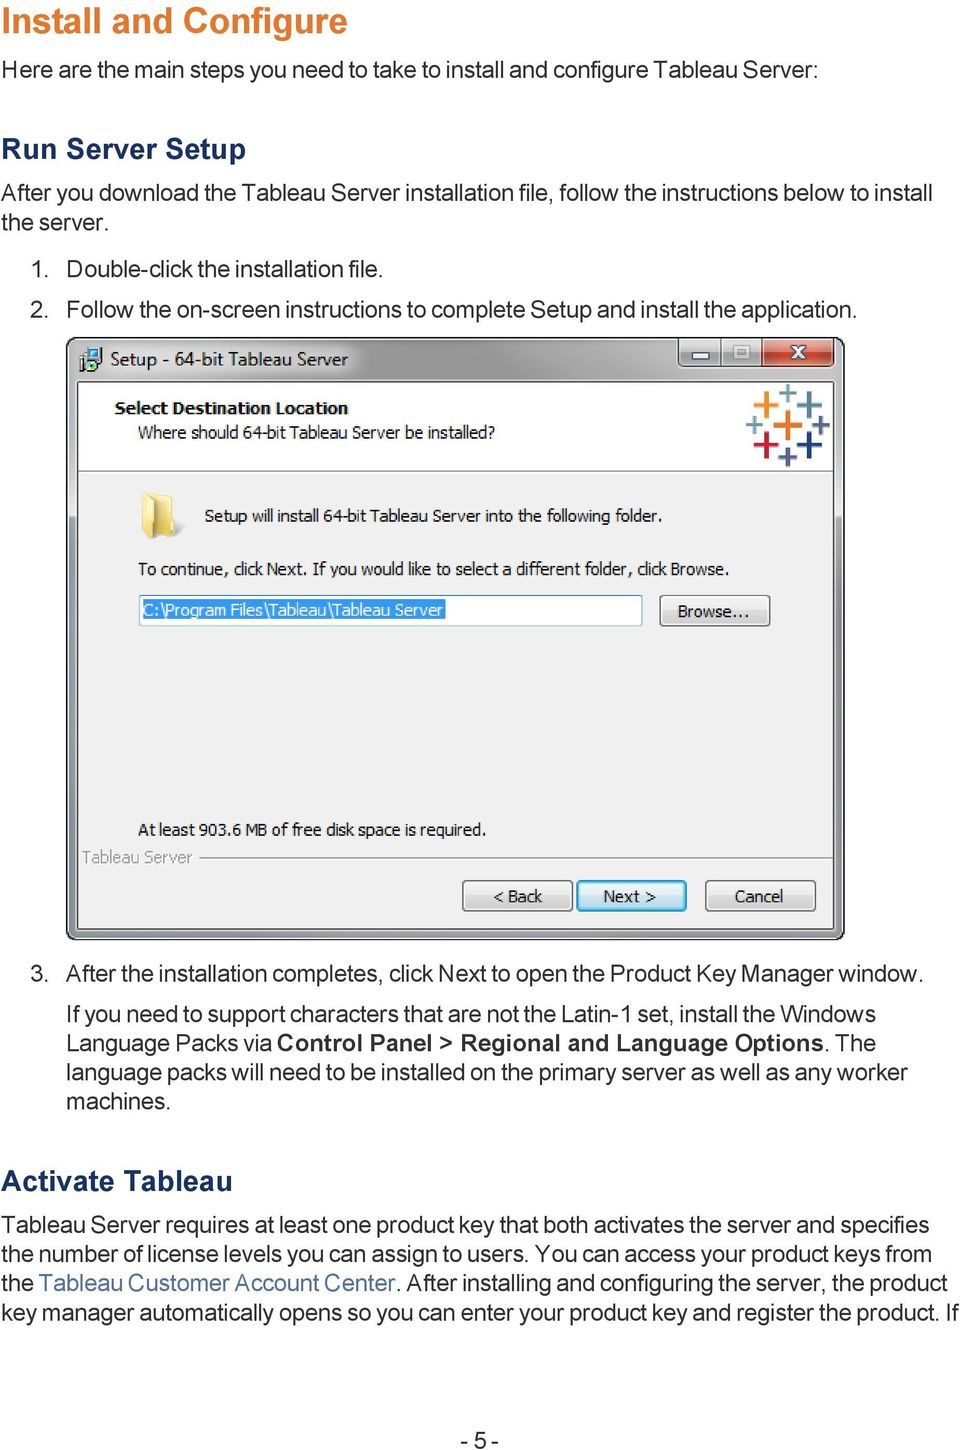 After the installation completes, click Next to open the Product Key Manager window.